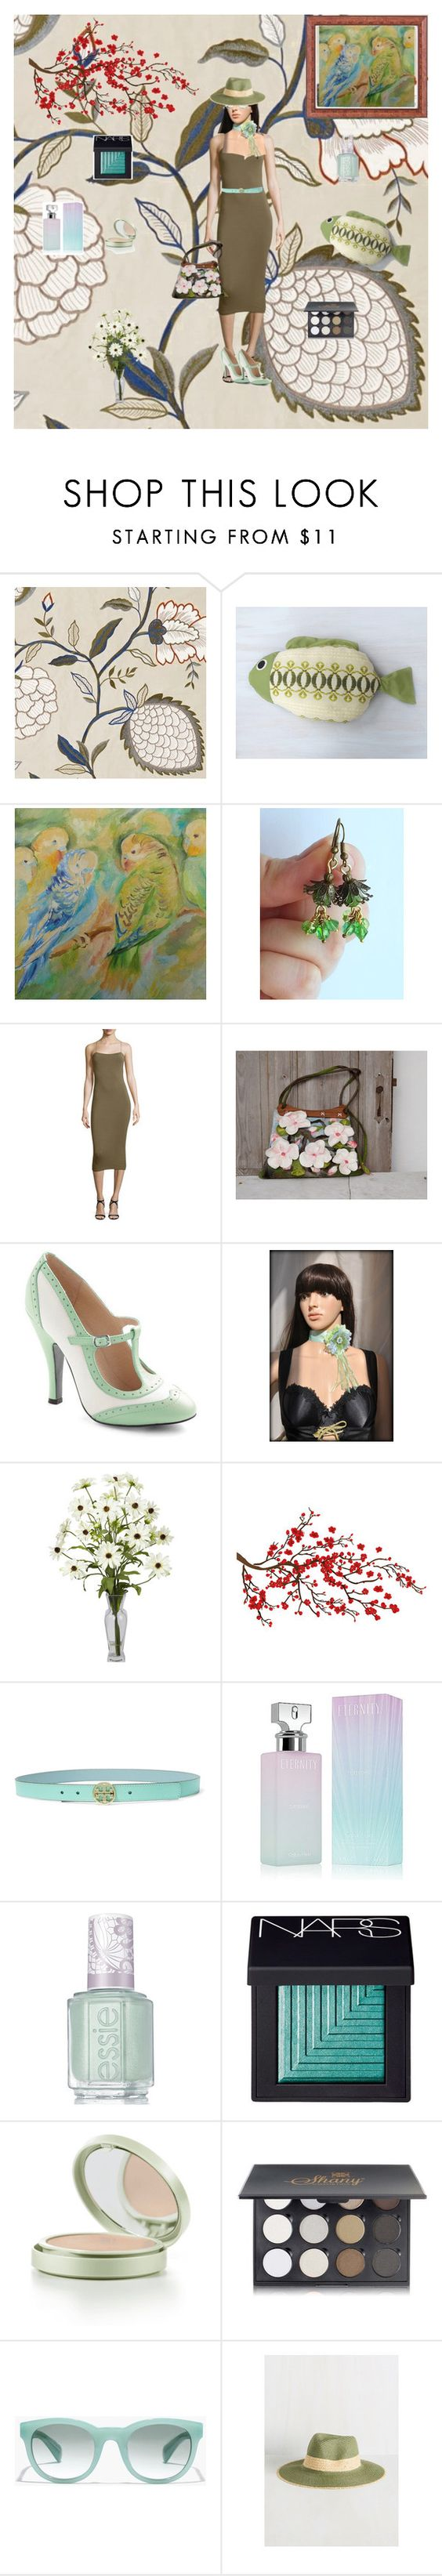 """""""today's outfit"""" by black-passion ❤ liked on Polyvore featuring T By Alexander Wang, Tory Burch, Calvin Klein, Essie, NARS Cosmetics, Shany and J.Crew"""